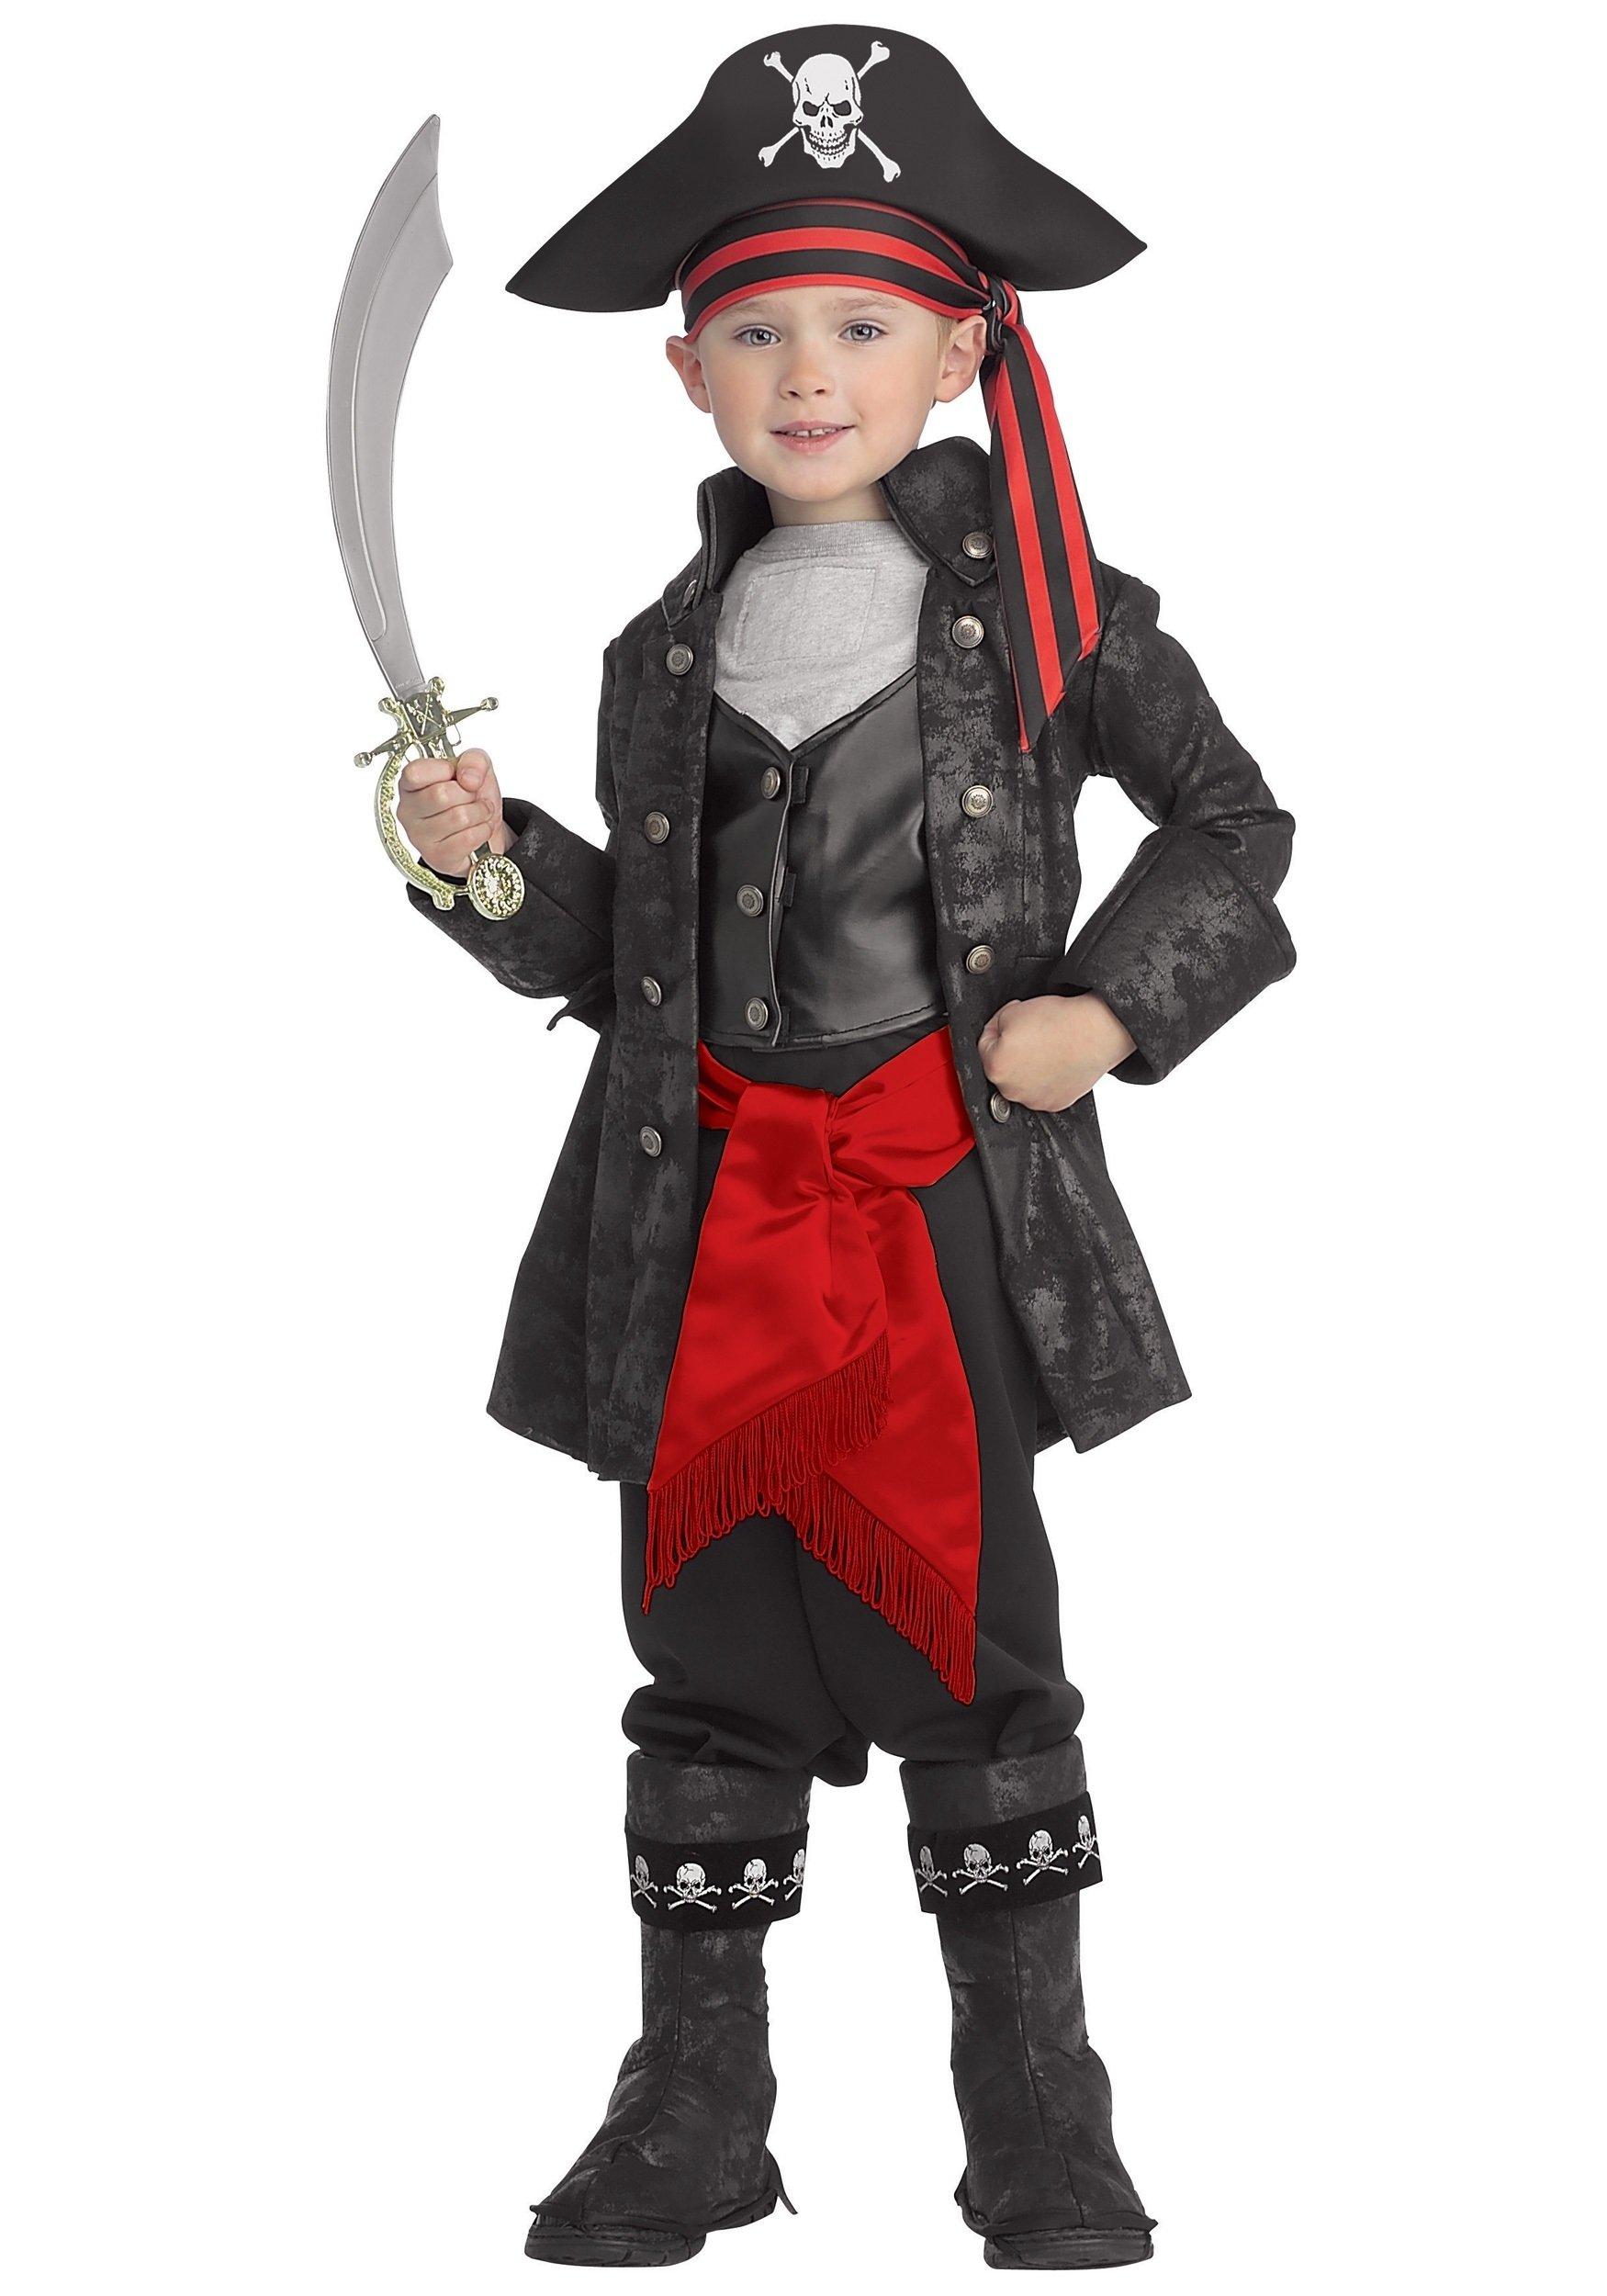 10 Great Pirate Costume Ideas For Kids kids captain black pirate costume 2020